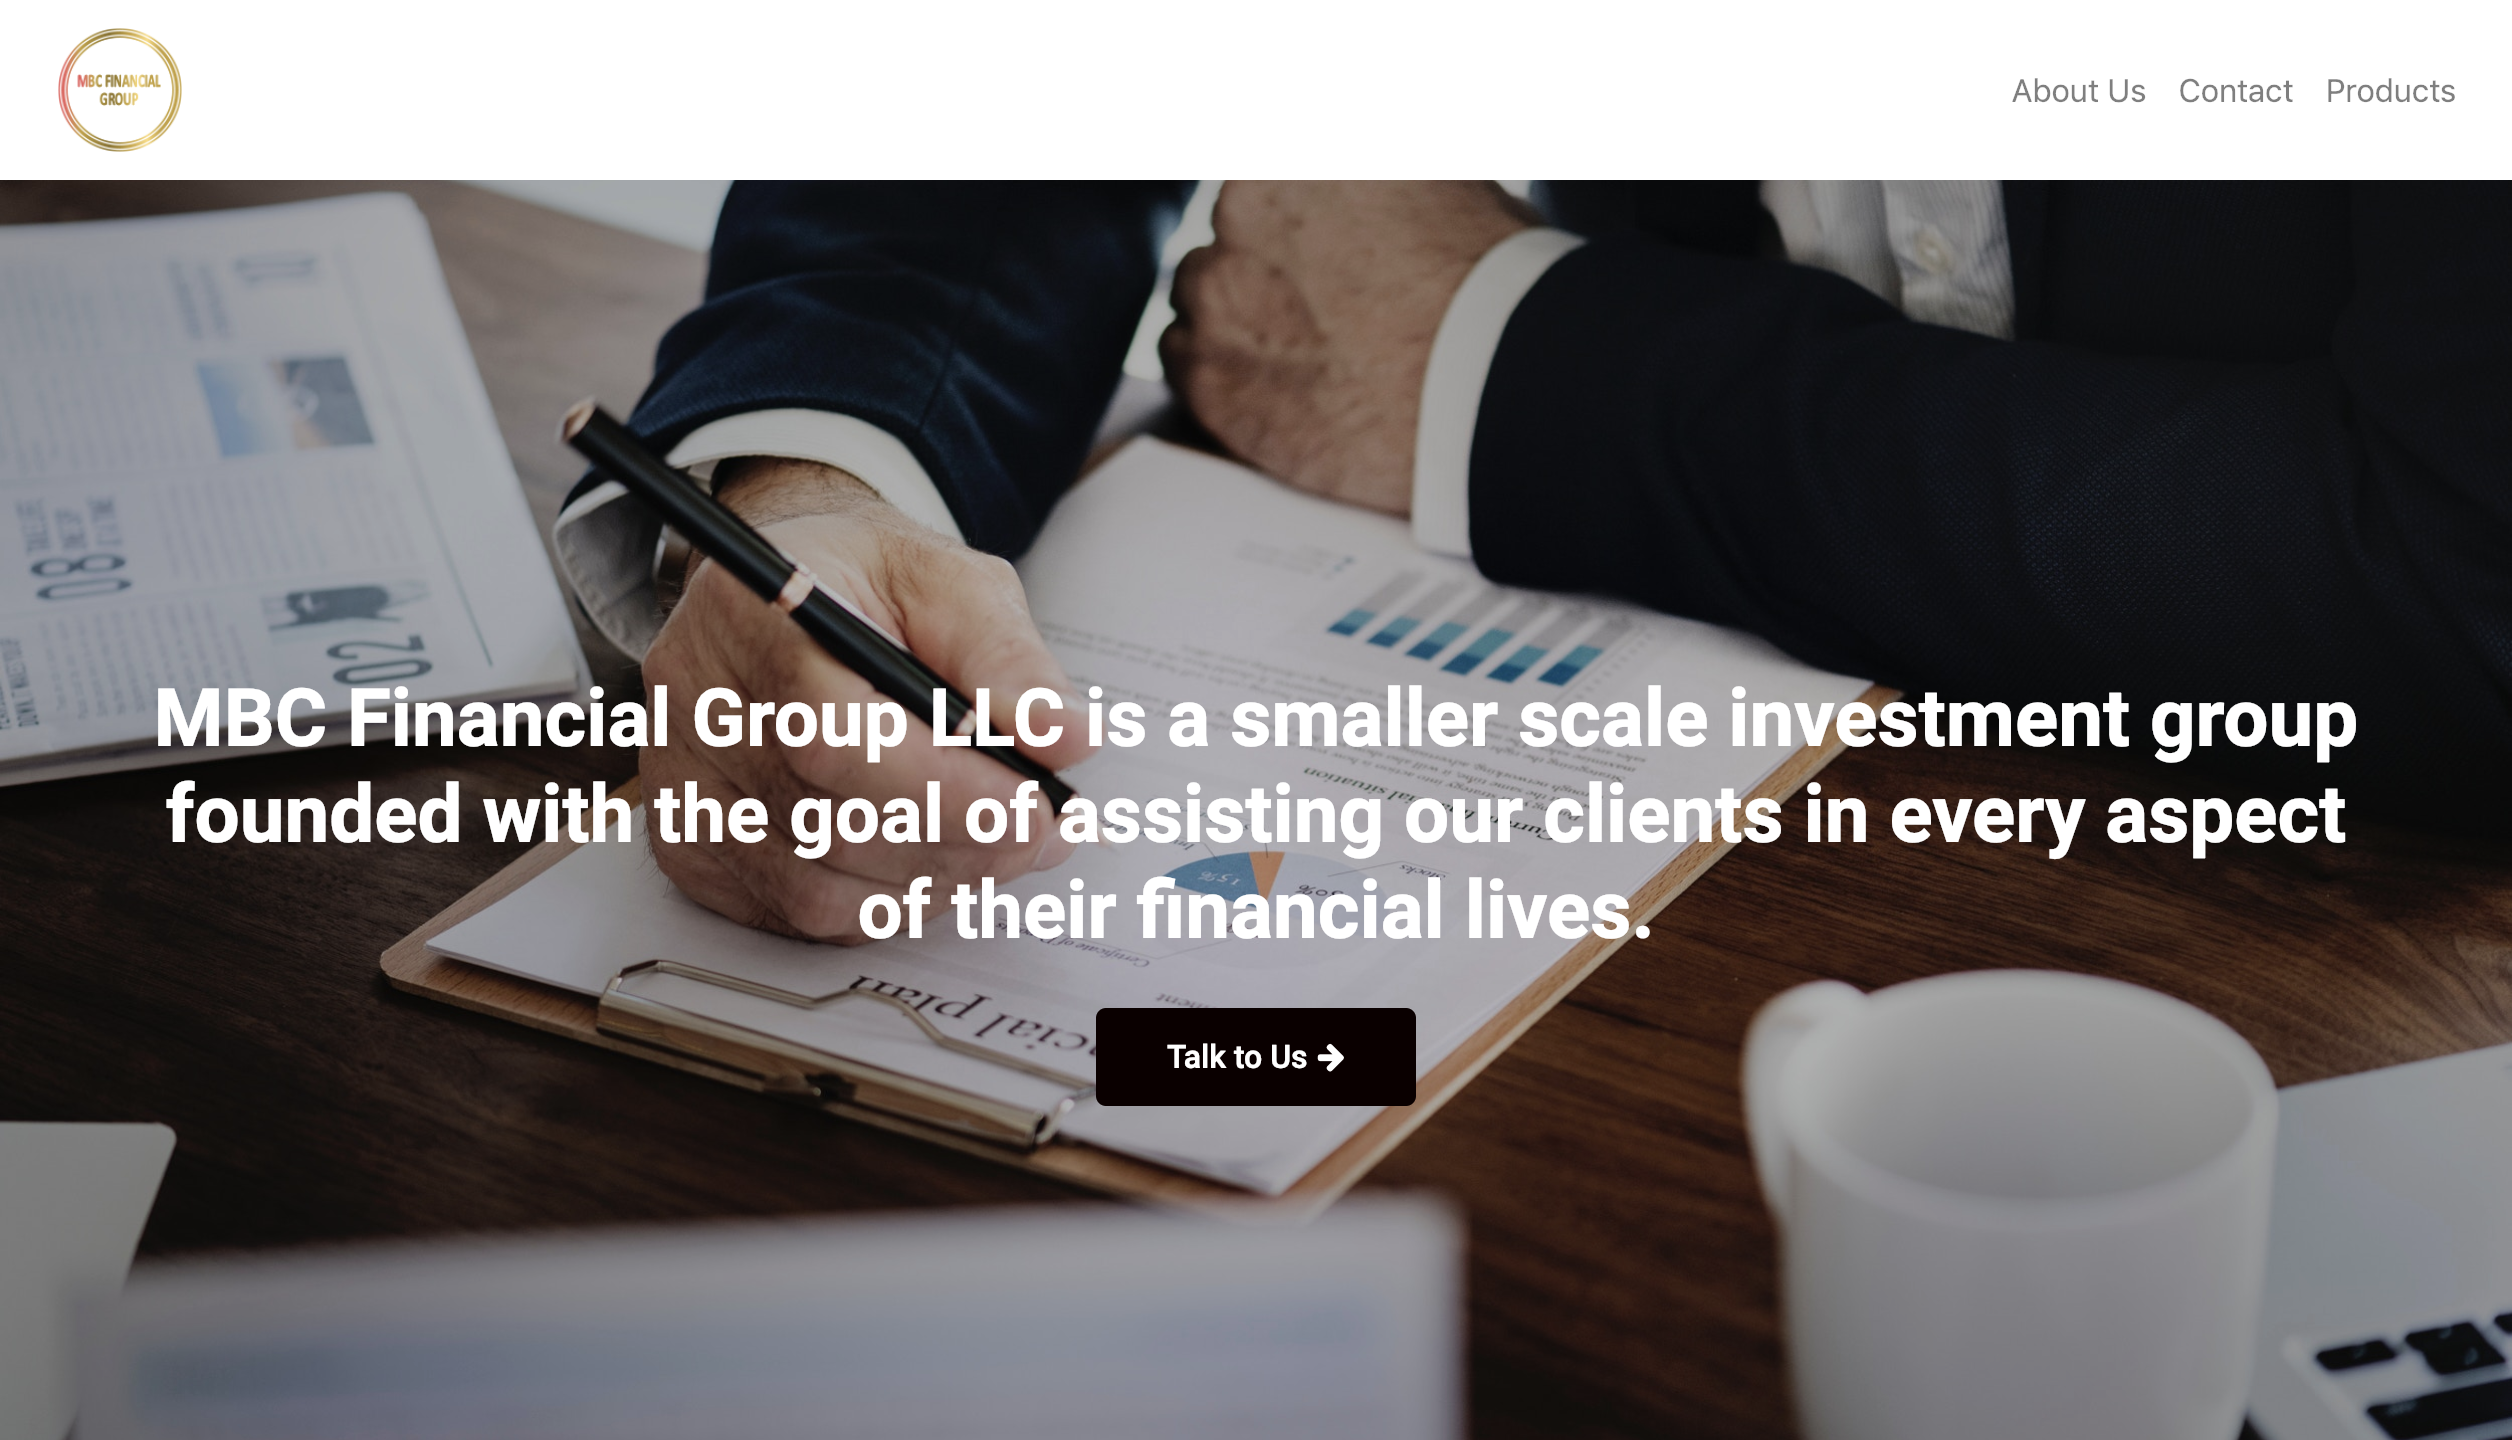 mbcfinancialgroup.com_